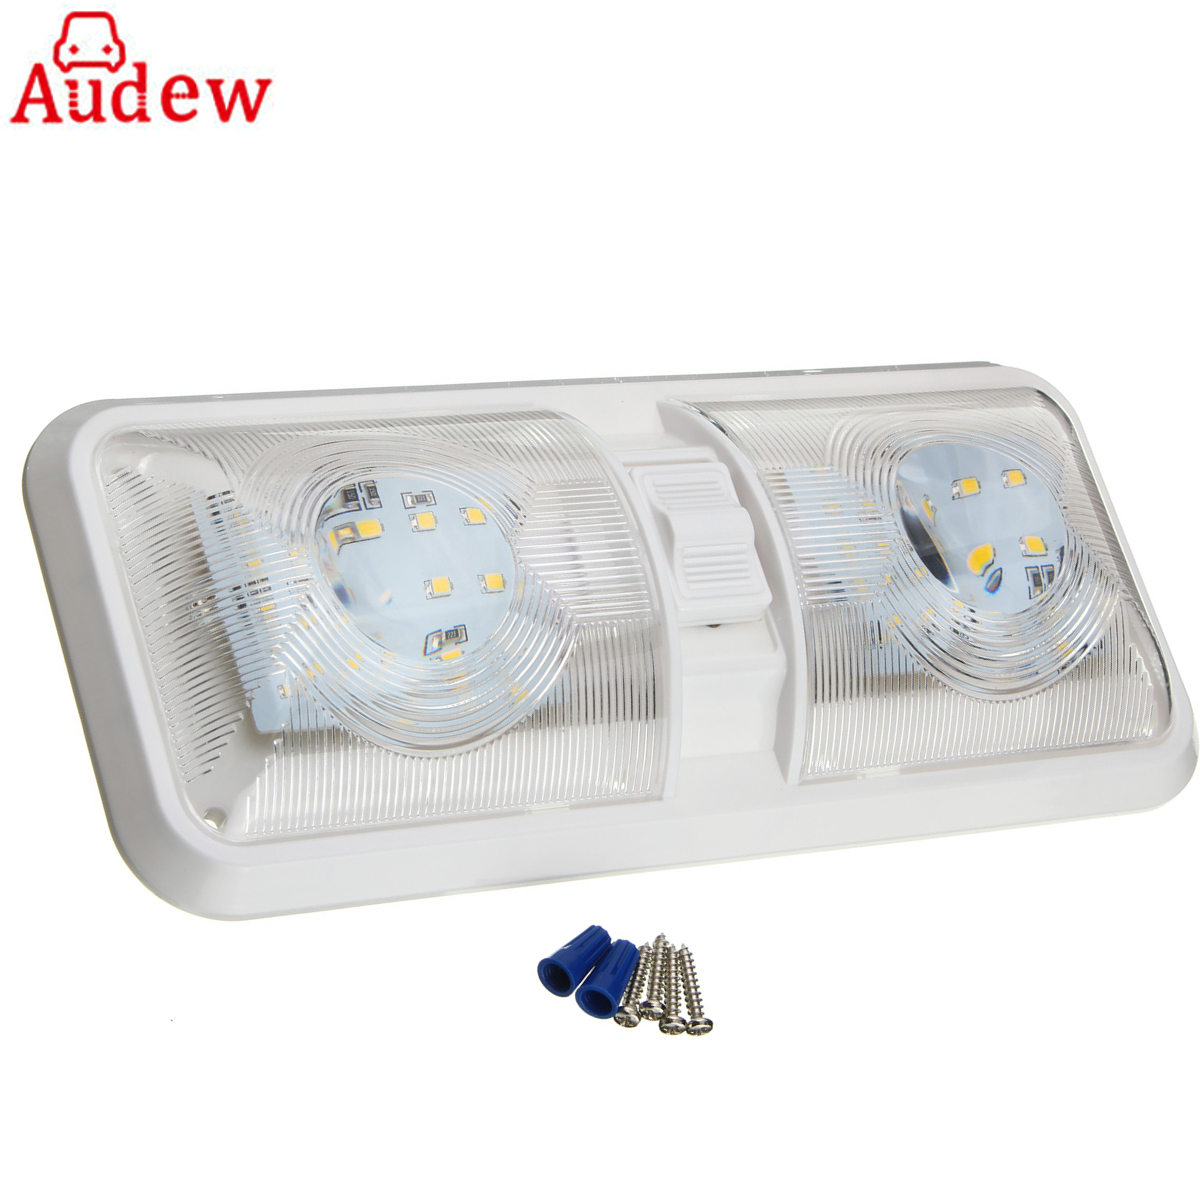 1Pcs Car Dome Light 12V 48 LED Interior Roof Ceiling Reading Lamp For RV Boat For Camper Trailer Plastic White боди piazza italia piazza italia pi022ewydw69 page 9